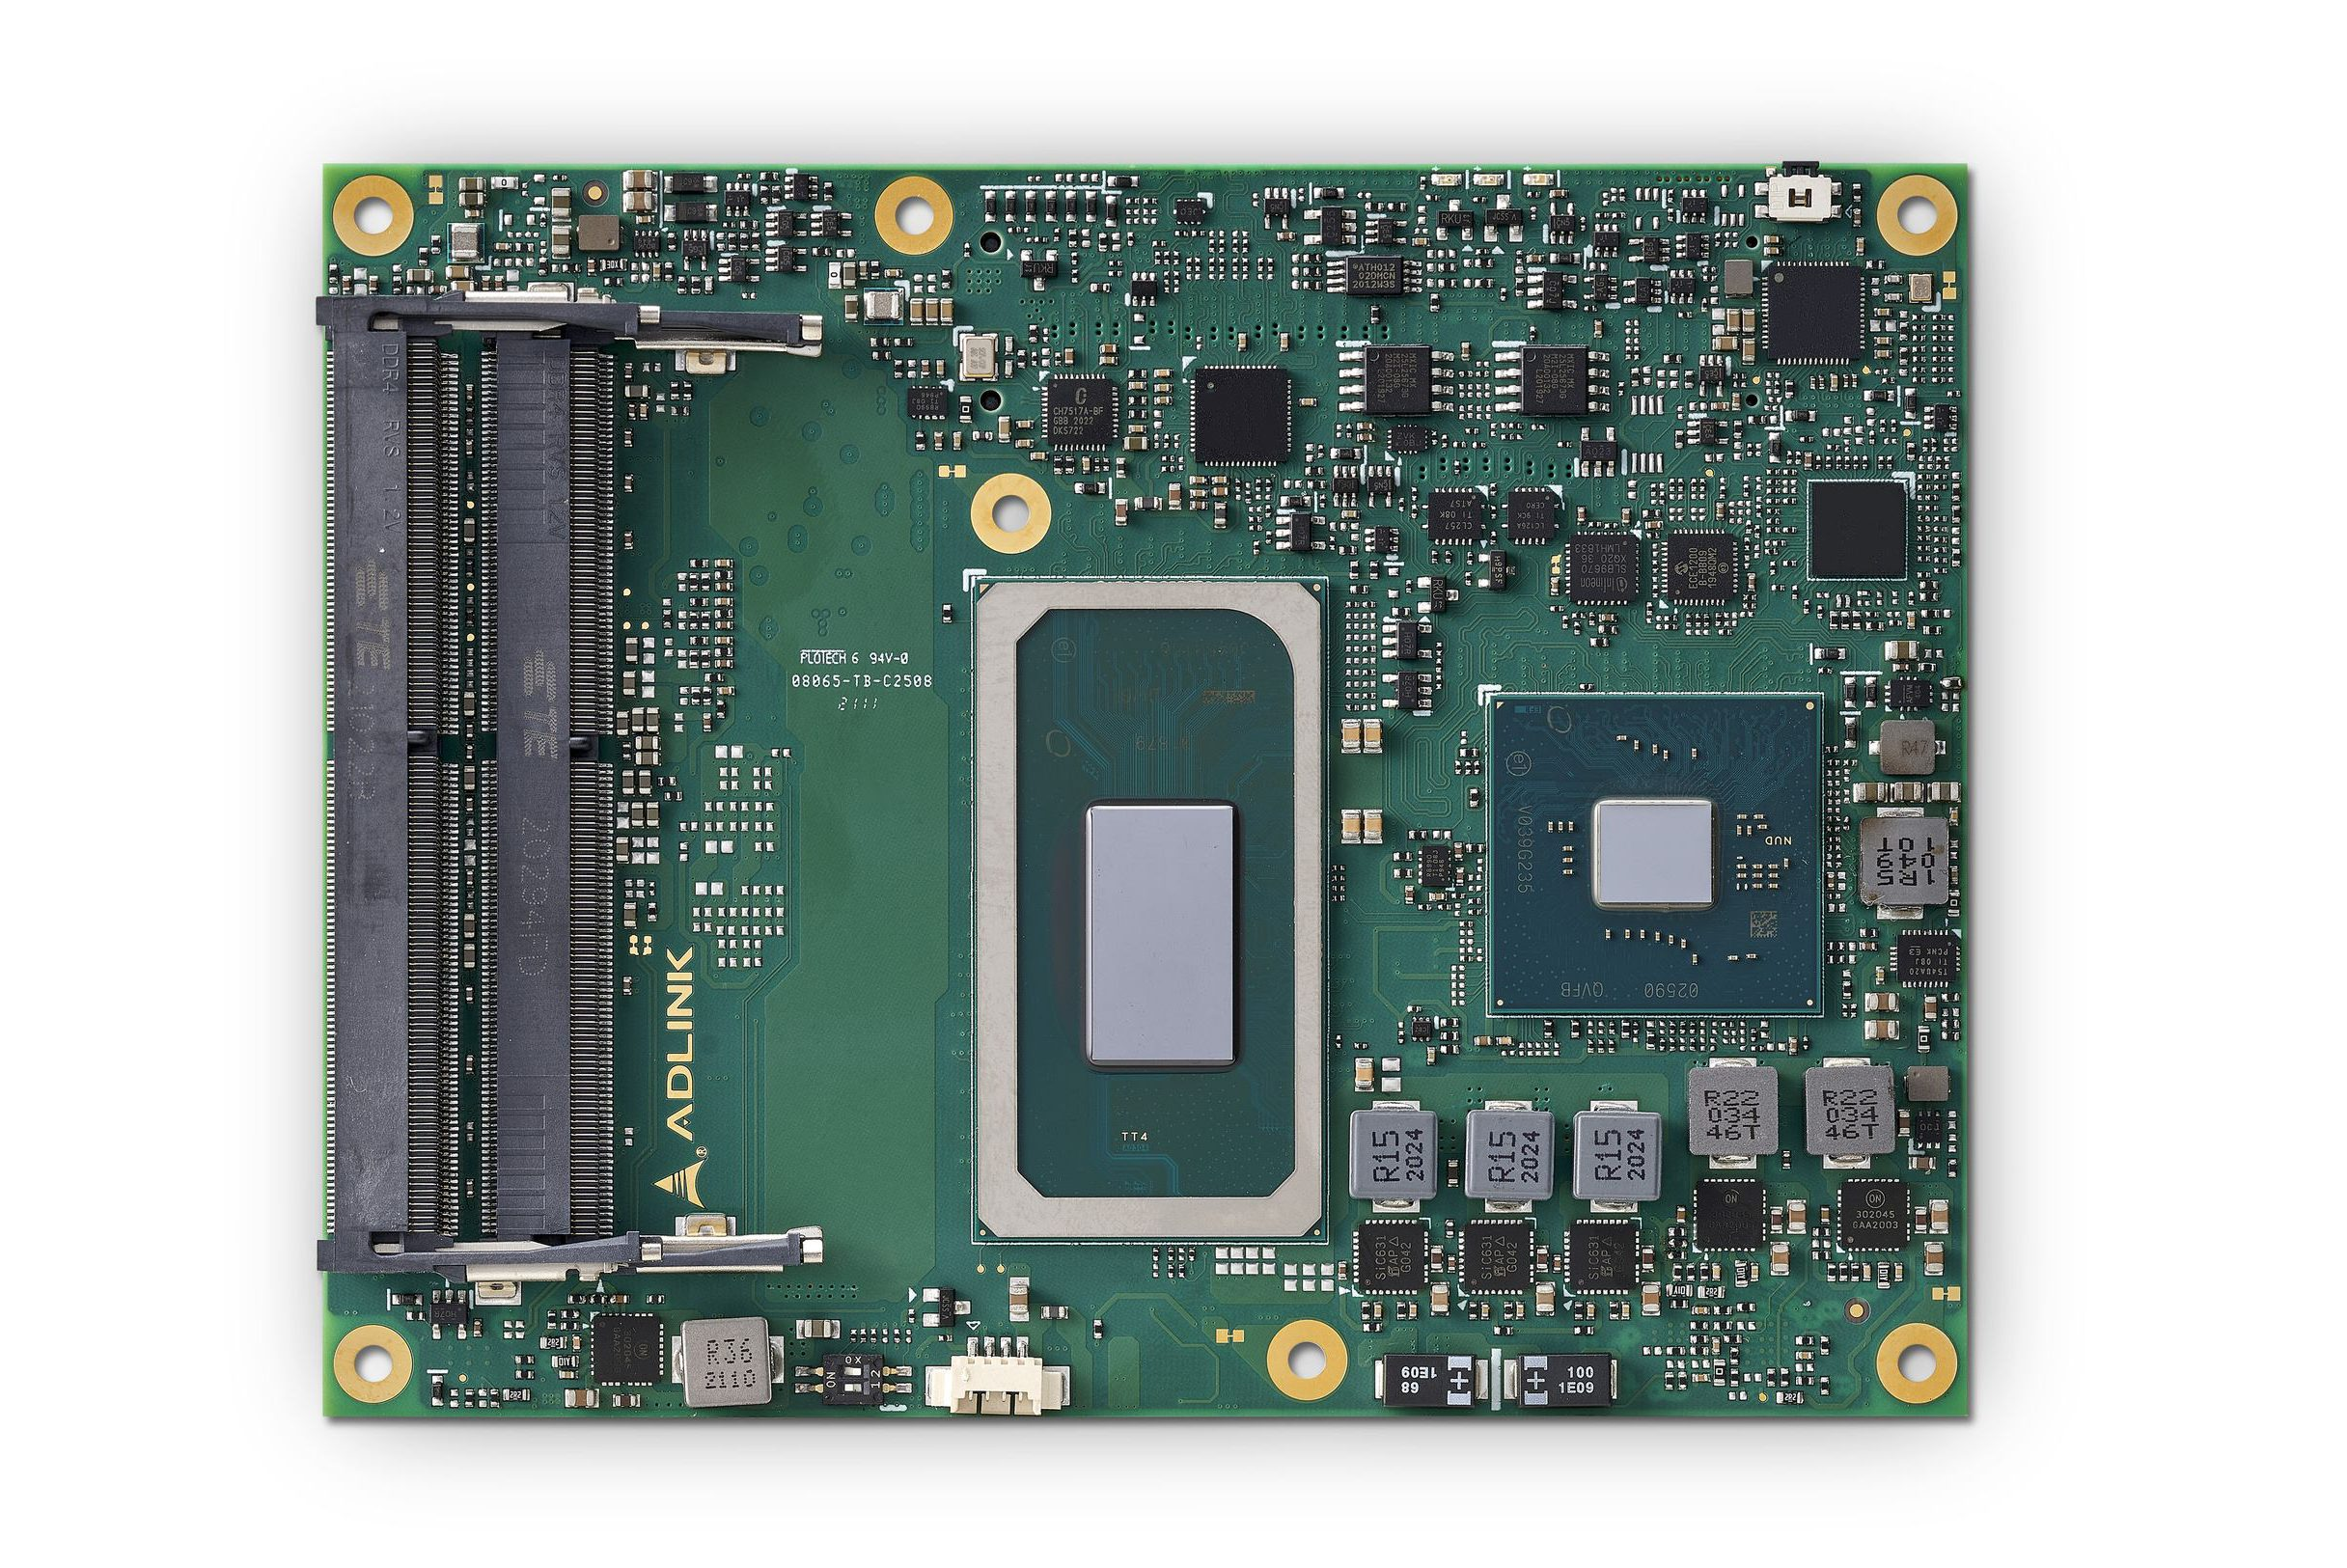 ADLINK Launches First COM Express Module Featuring Intel® Core™, Xeon® and Celeron® 6000 processors